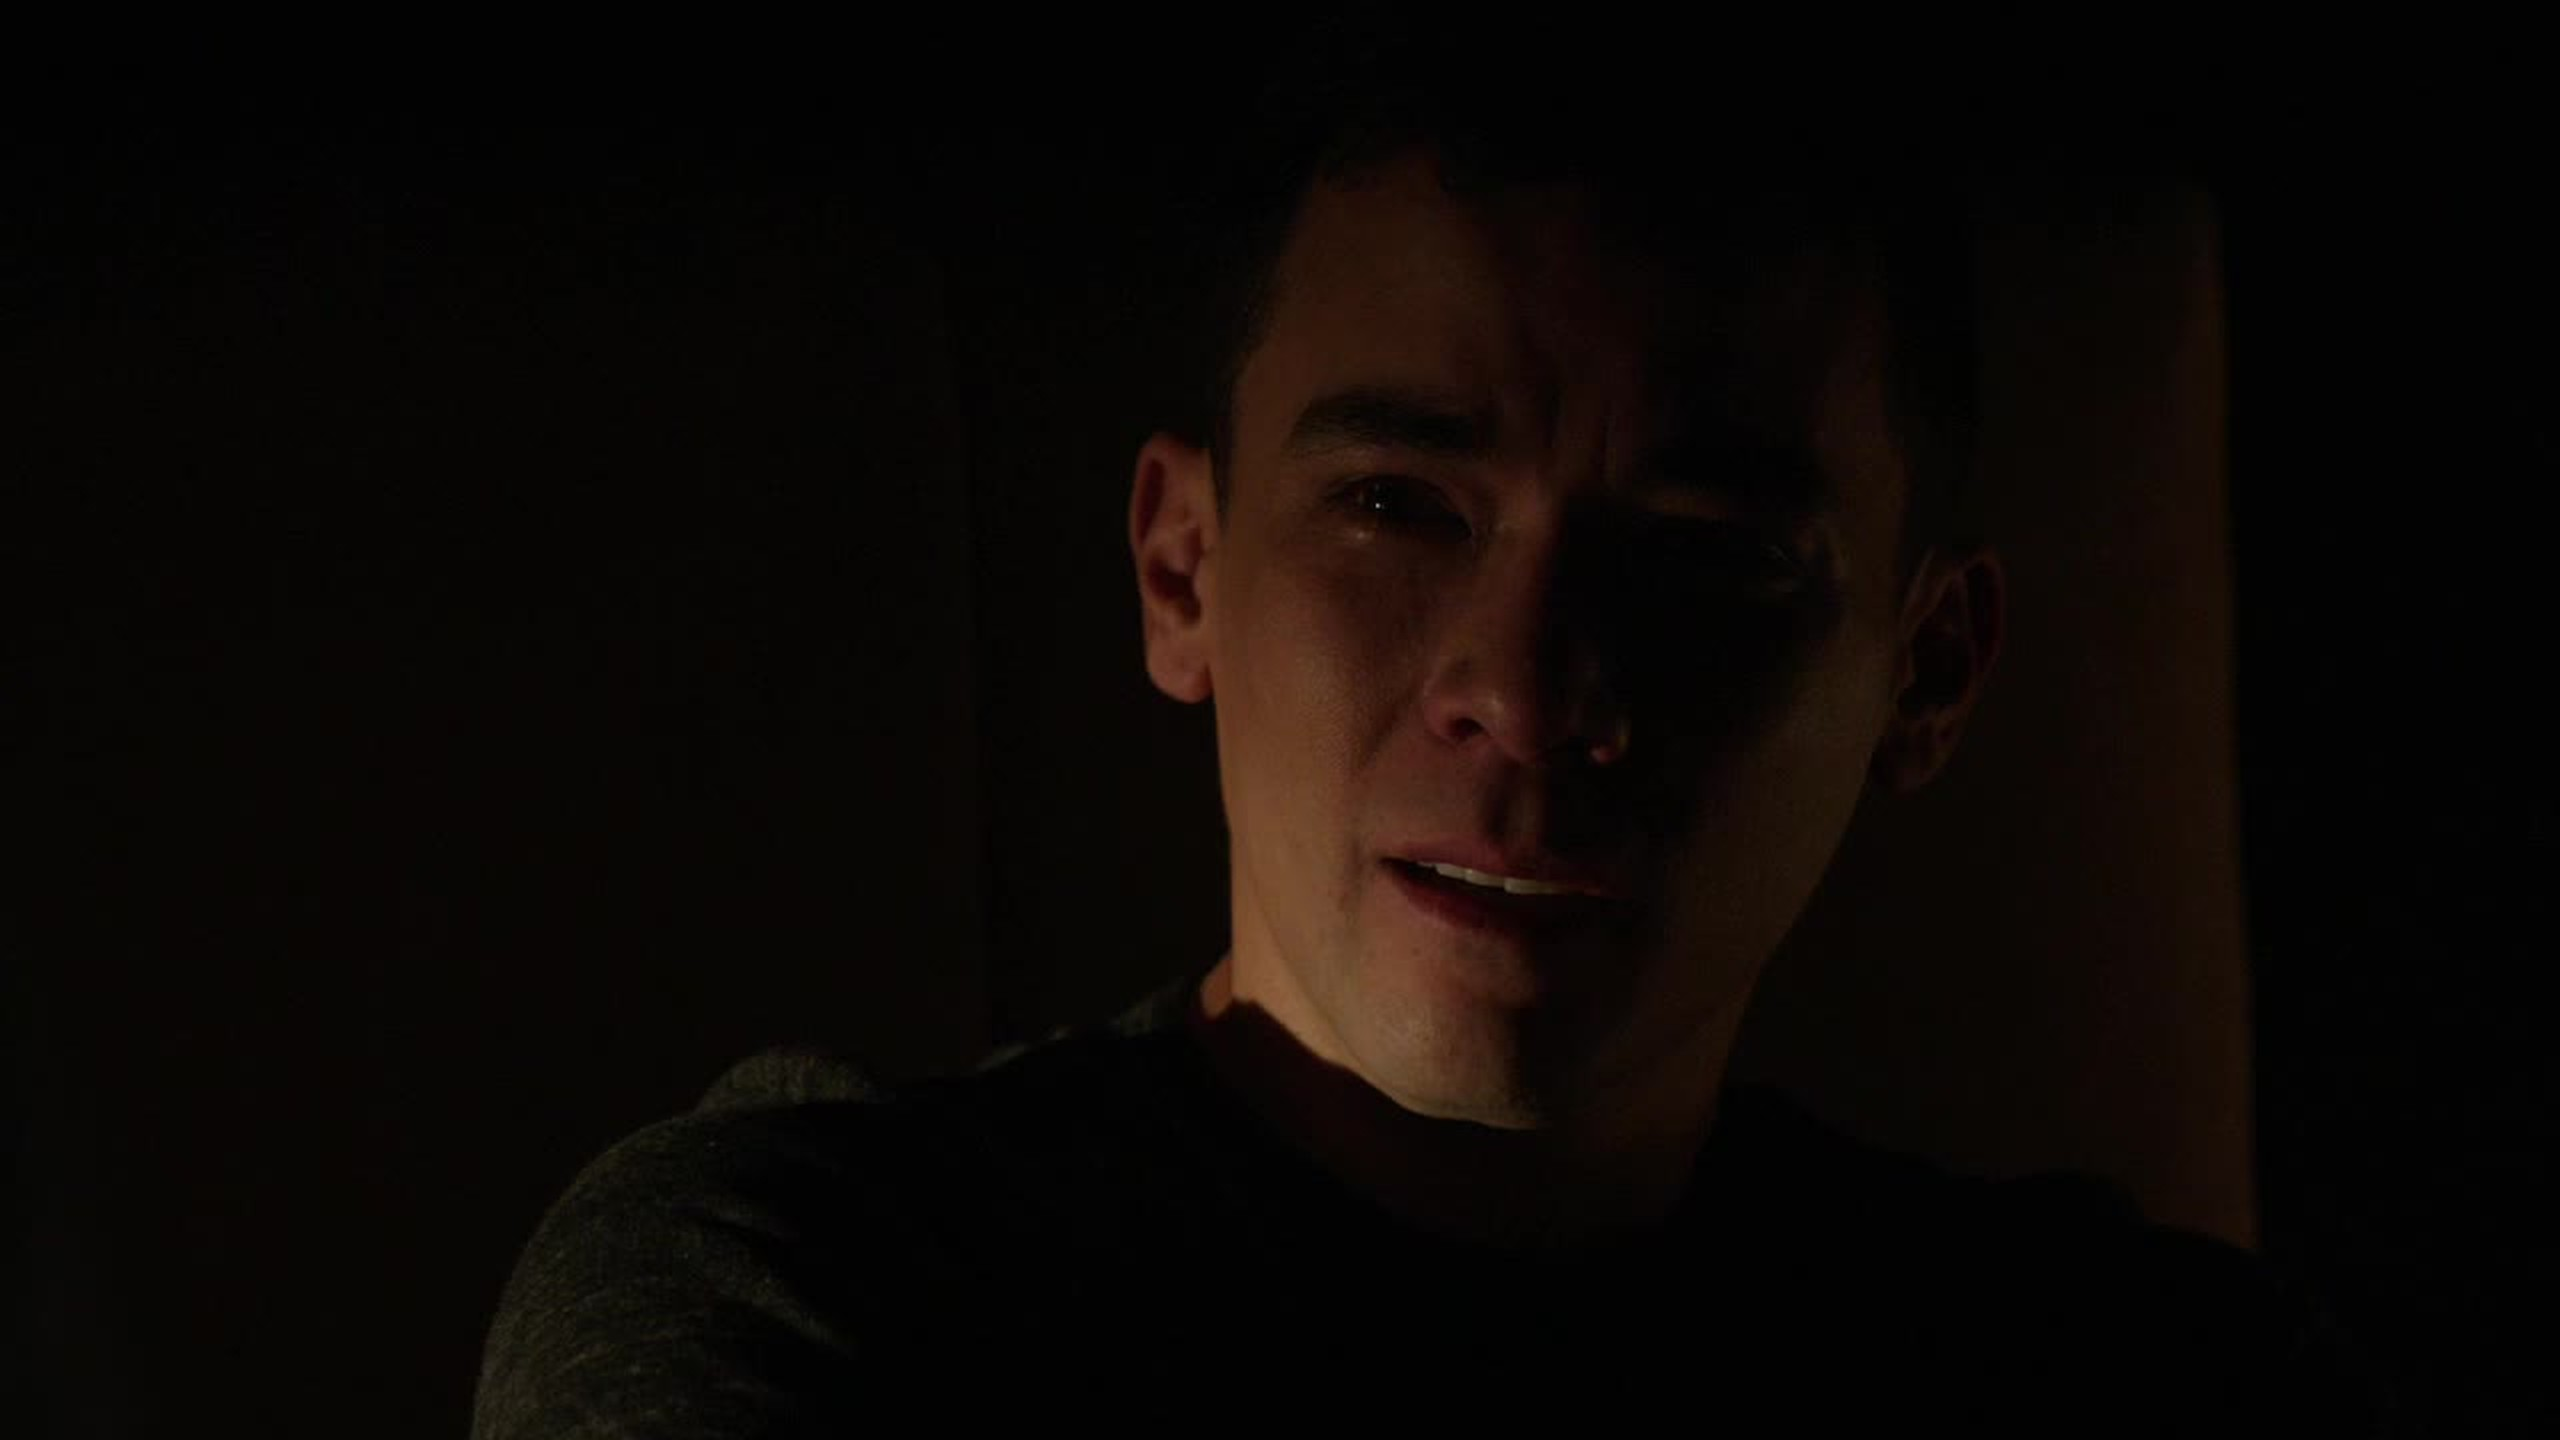 Omg, I felt so bad for Oliver!! I hope Connor helps him get through this.